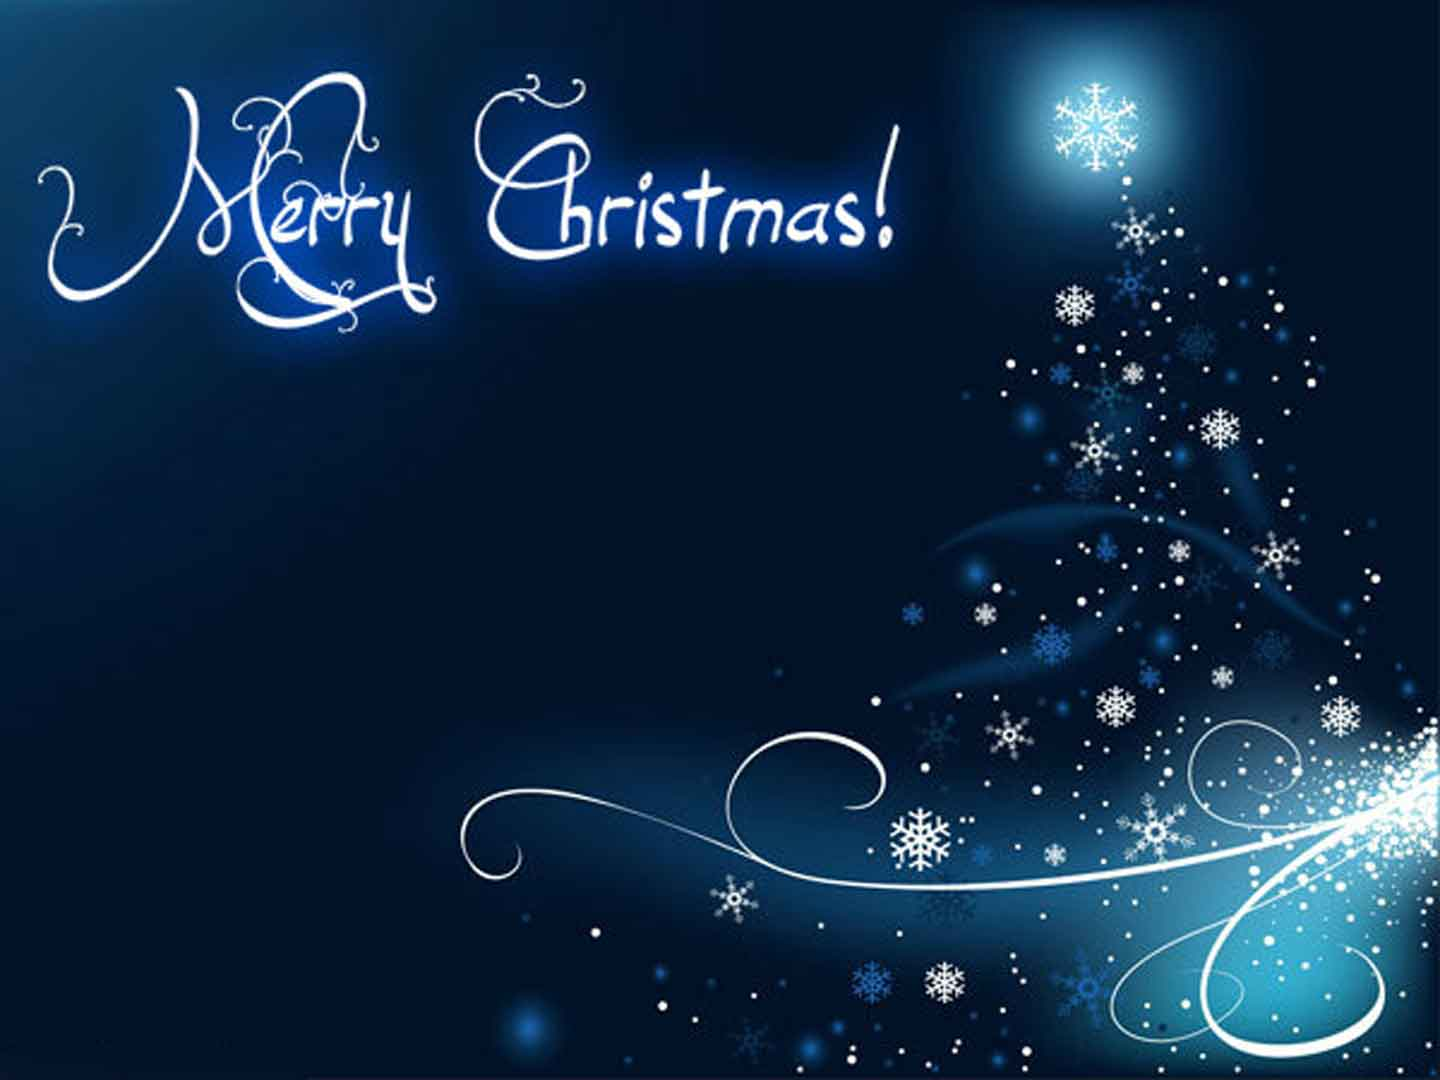 Merry Christmas Background Wallpapers9 1440x1080